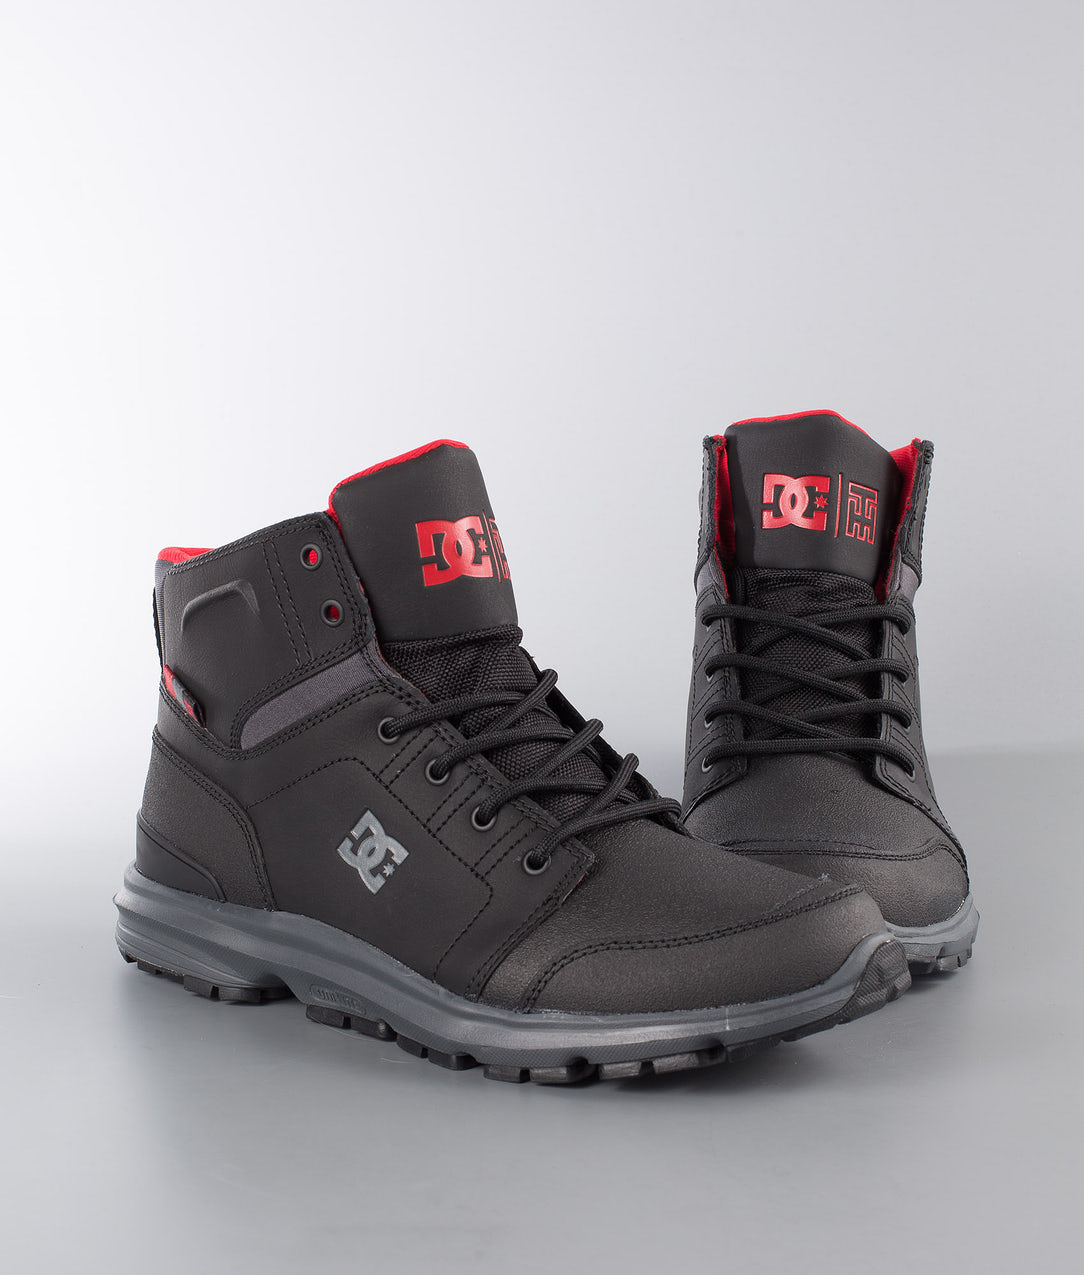 huge selection of b0211 e8b54 DC Torstein Shoes Black/Grey/Red